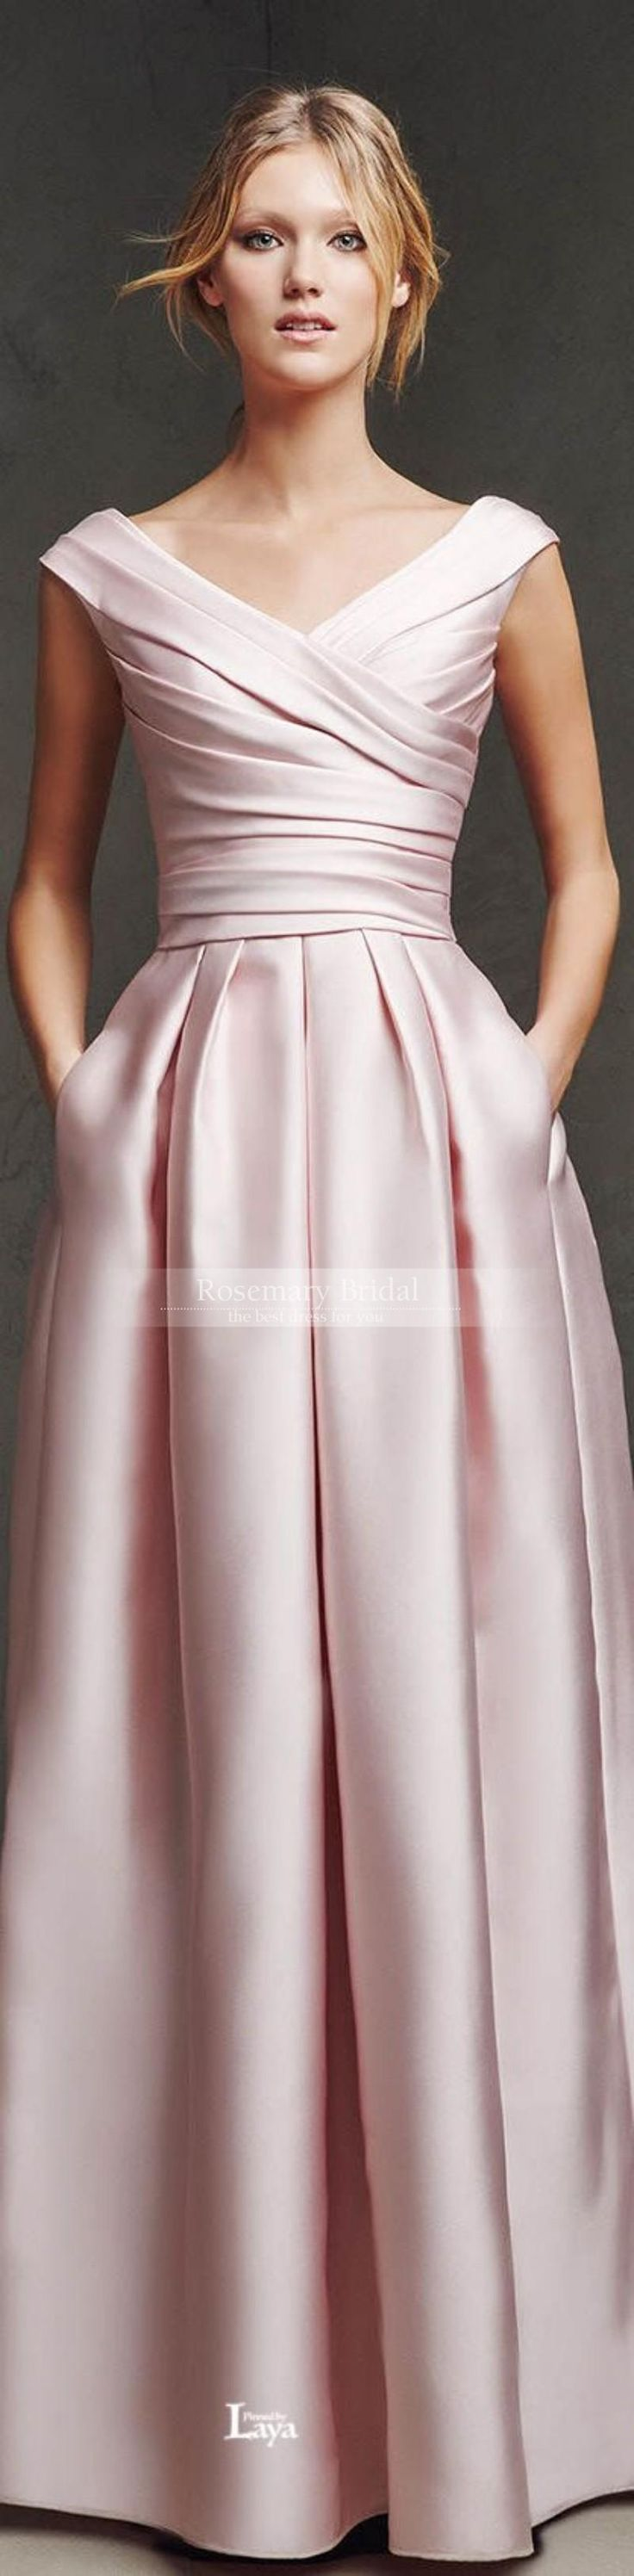 Elegant Winter 2016 Pleats A Line V Neck Cap Sleeve Long Floor Length Pink Satin Wedding Bridesmaid Dresses Custom Made Cheap Plus Size Pastel Bridesmaid Dresses Bridesmaid Dresses Cheap From Rosemarybridaldress, $103.67| Dhgate.Com